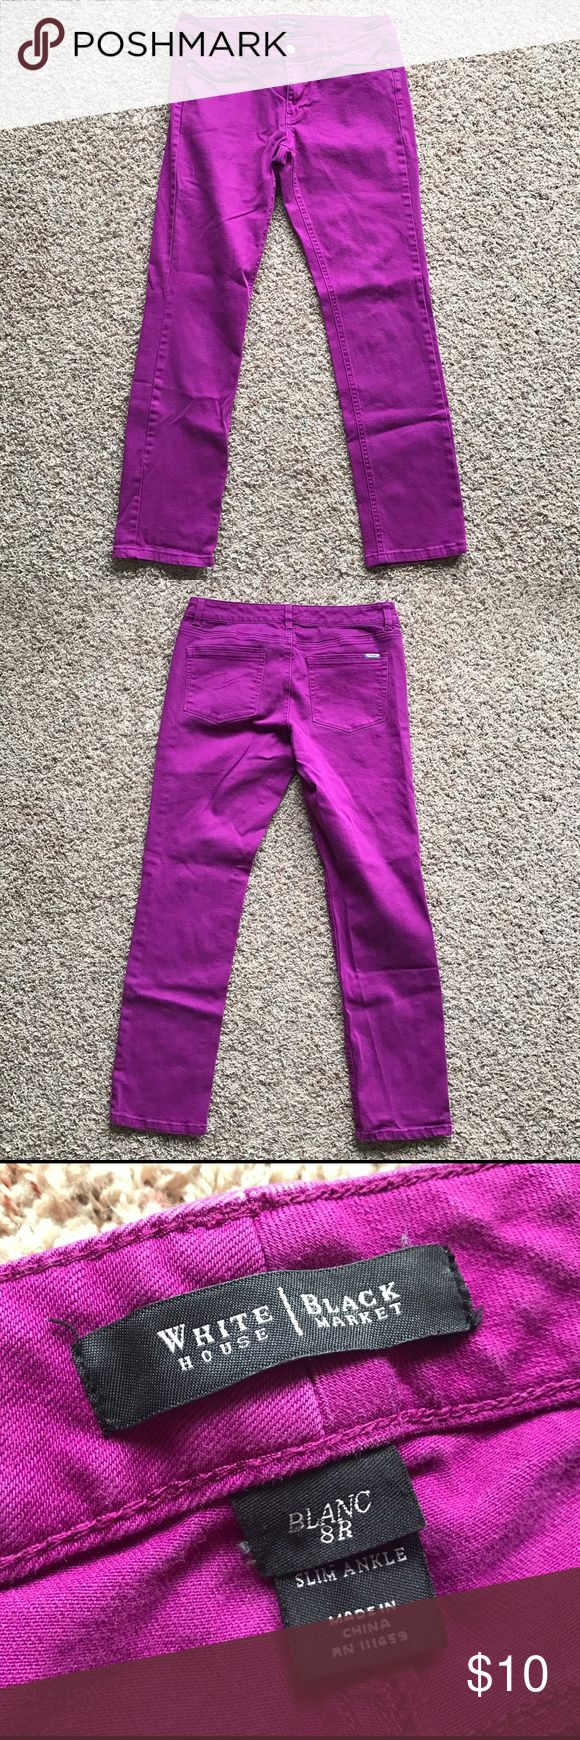 """White House Black Market Purple Jeans Excellent condition. Pretty purple. 29"""" inseam. 15.5"""" waist. Slime ankle. Cotton Stretch. Women's 8R. ❤️ offers accepted and bundle discounts ❤️ White House Black Market Jeans Skinny"""